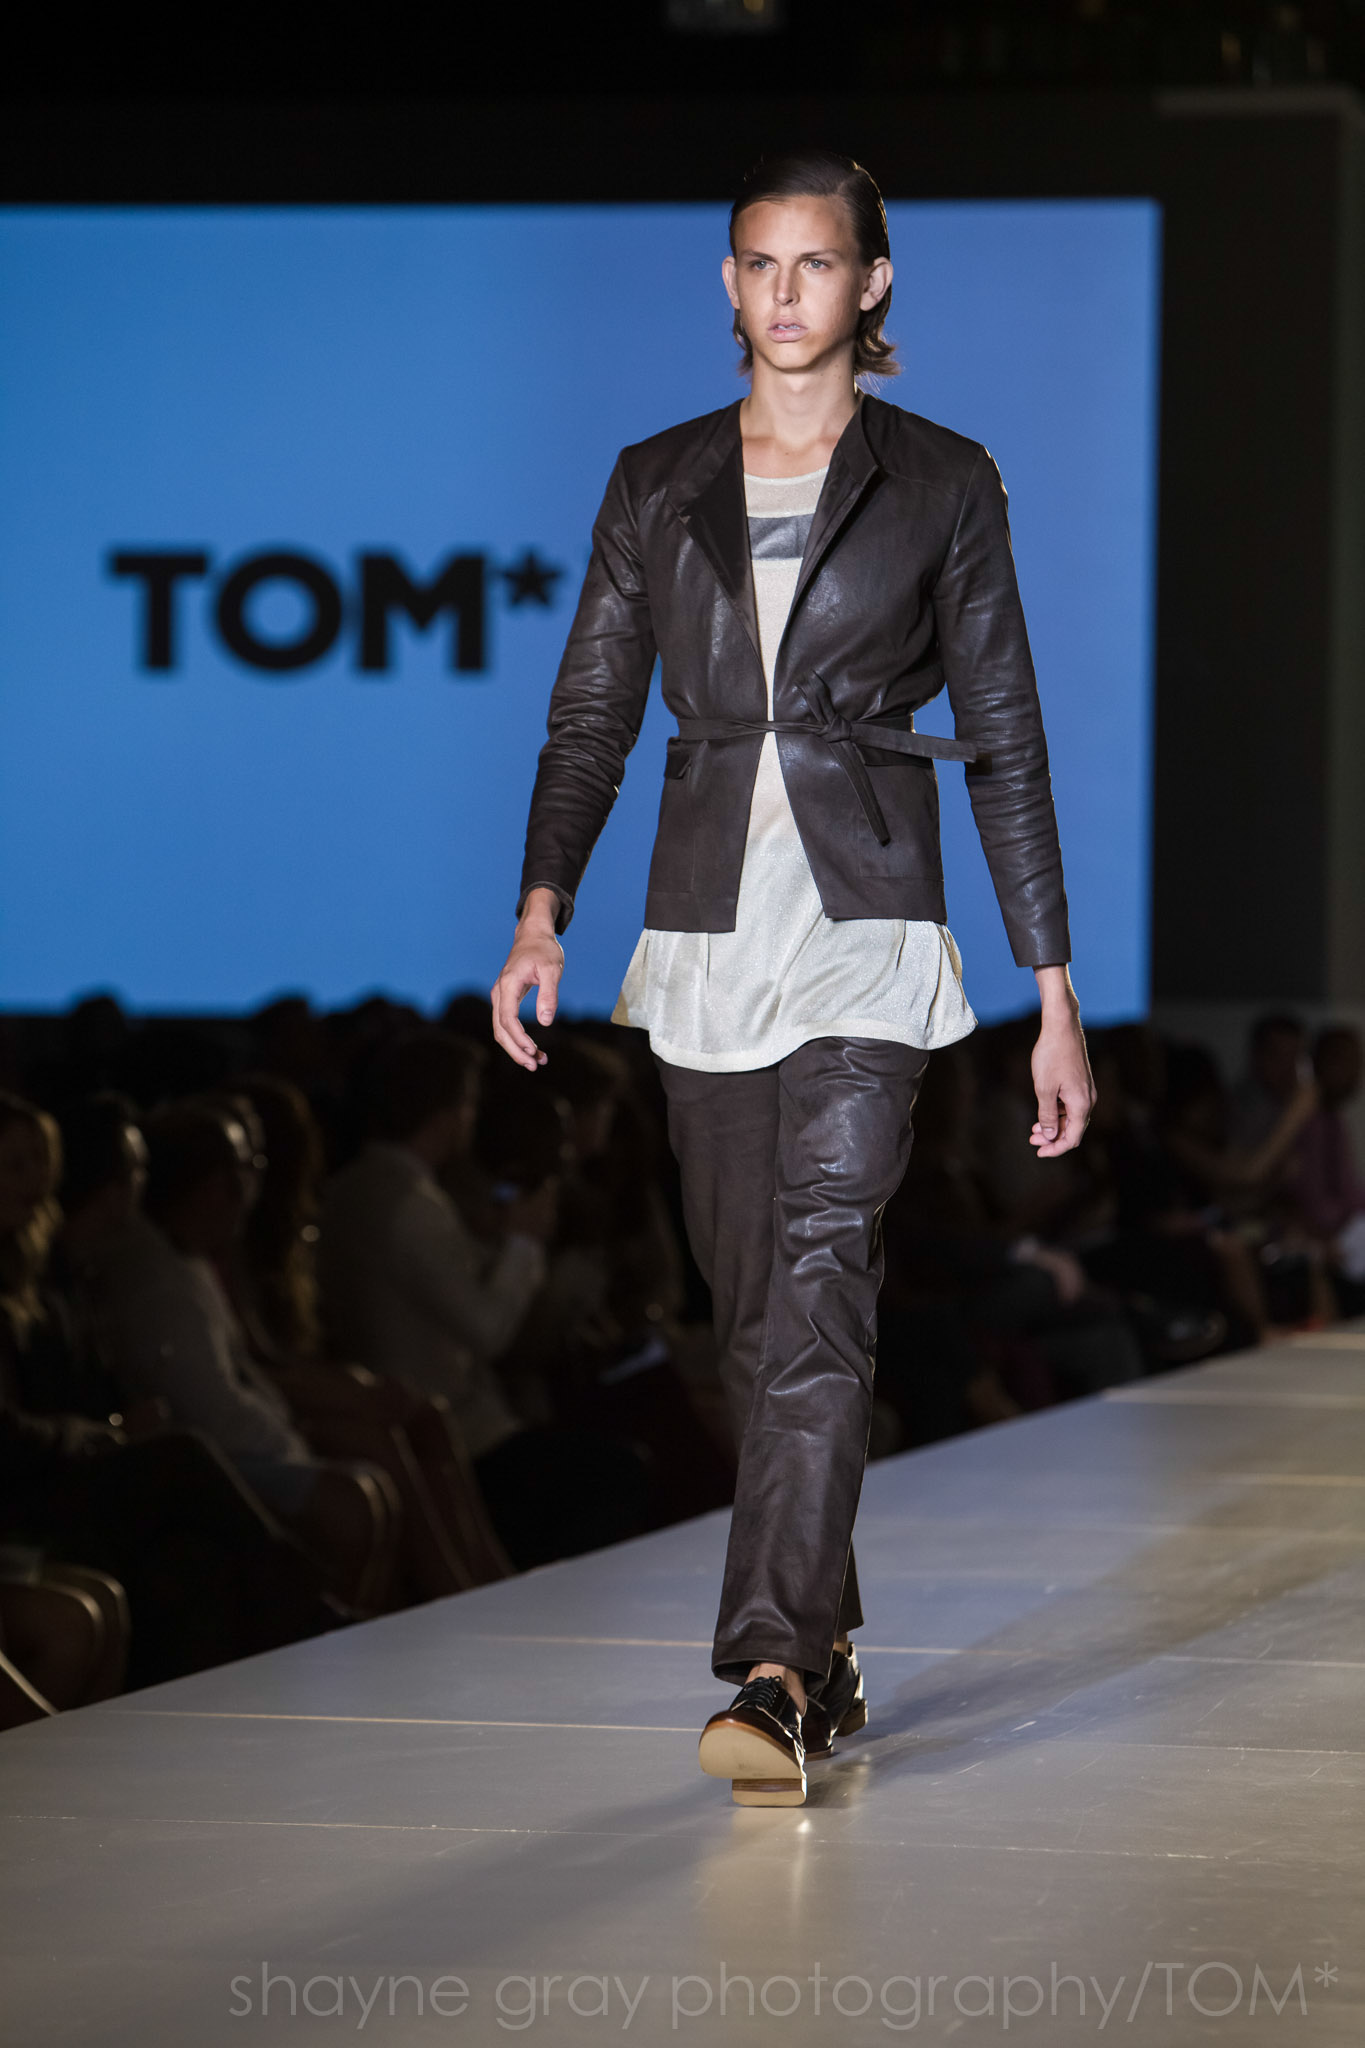 Shayne-Gray-Toronto-men's-fashion_week-TOM-paul-nathaphol-7973.jpg